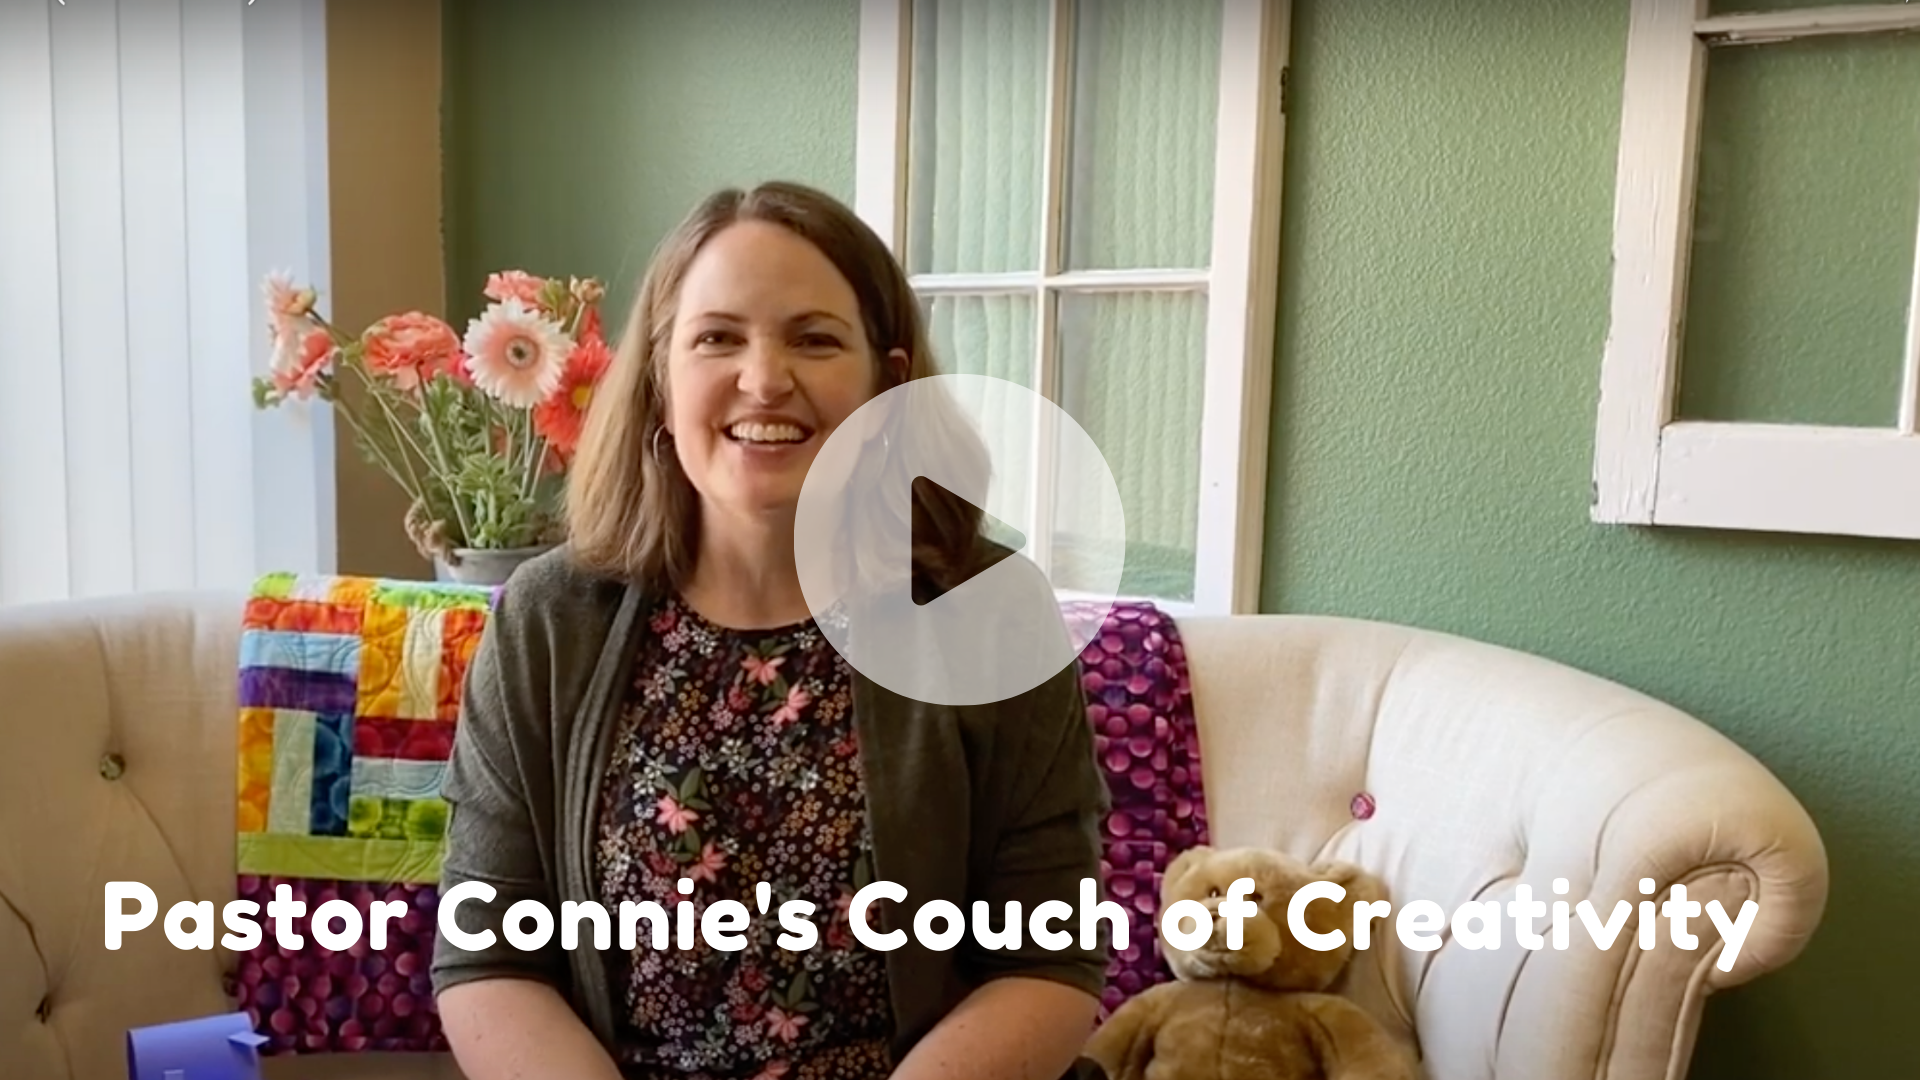 Connie's Couch of Creativity